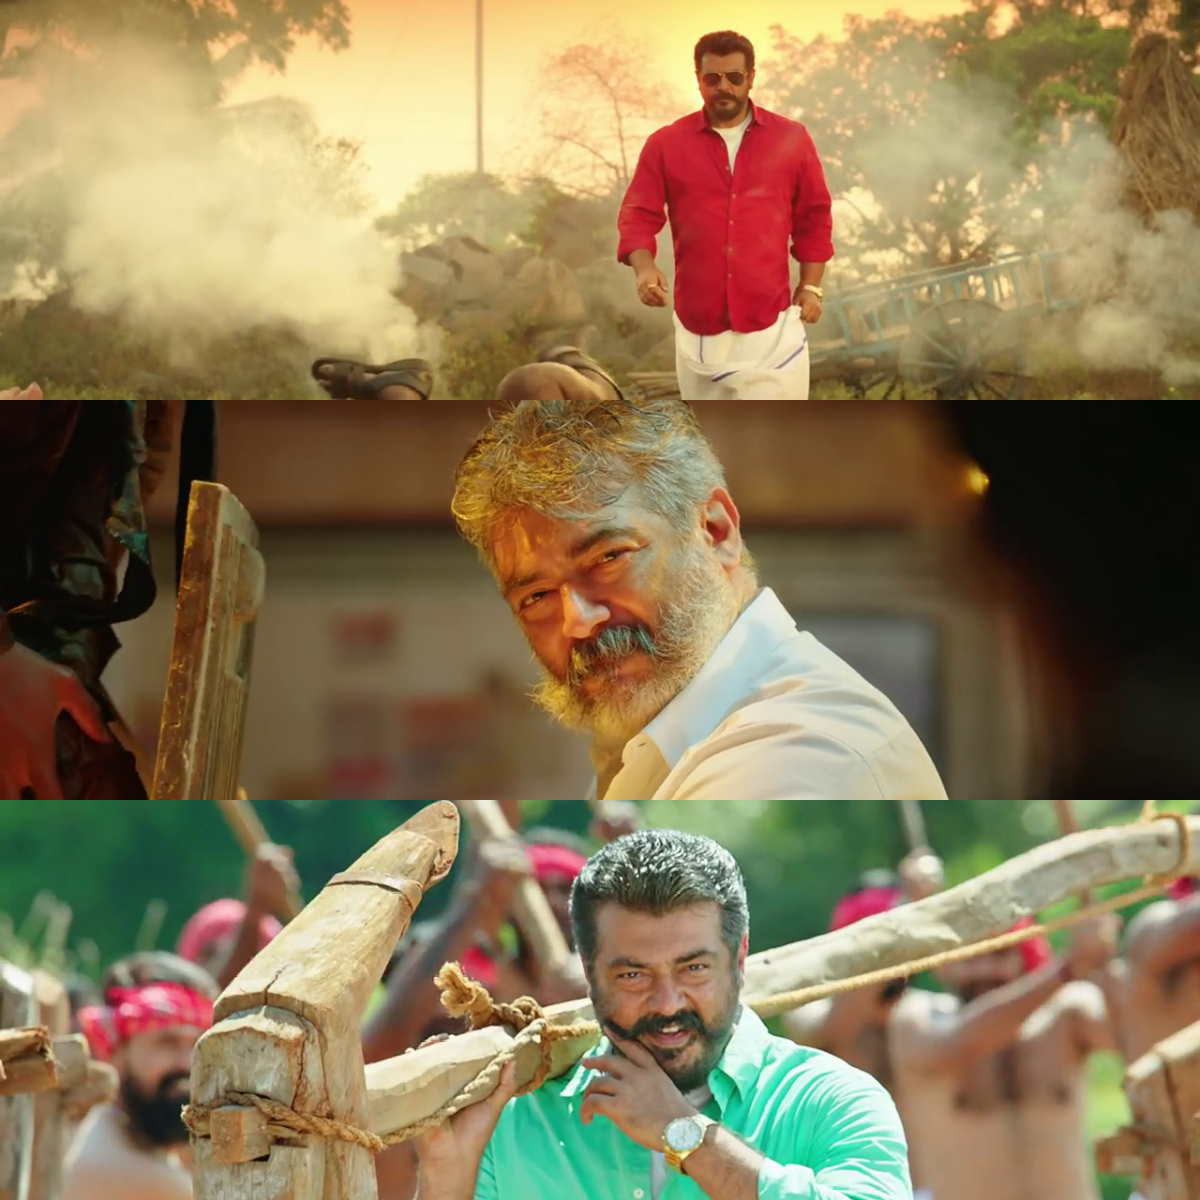 Viswasam joined photos meme template